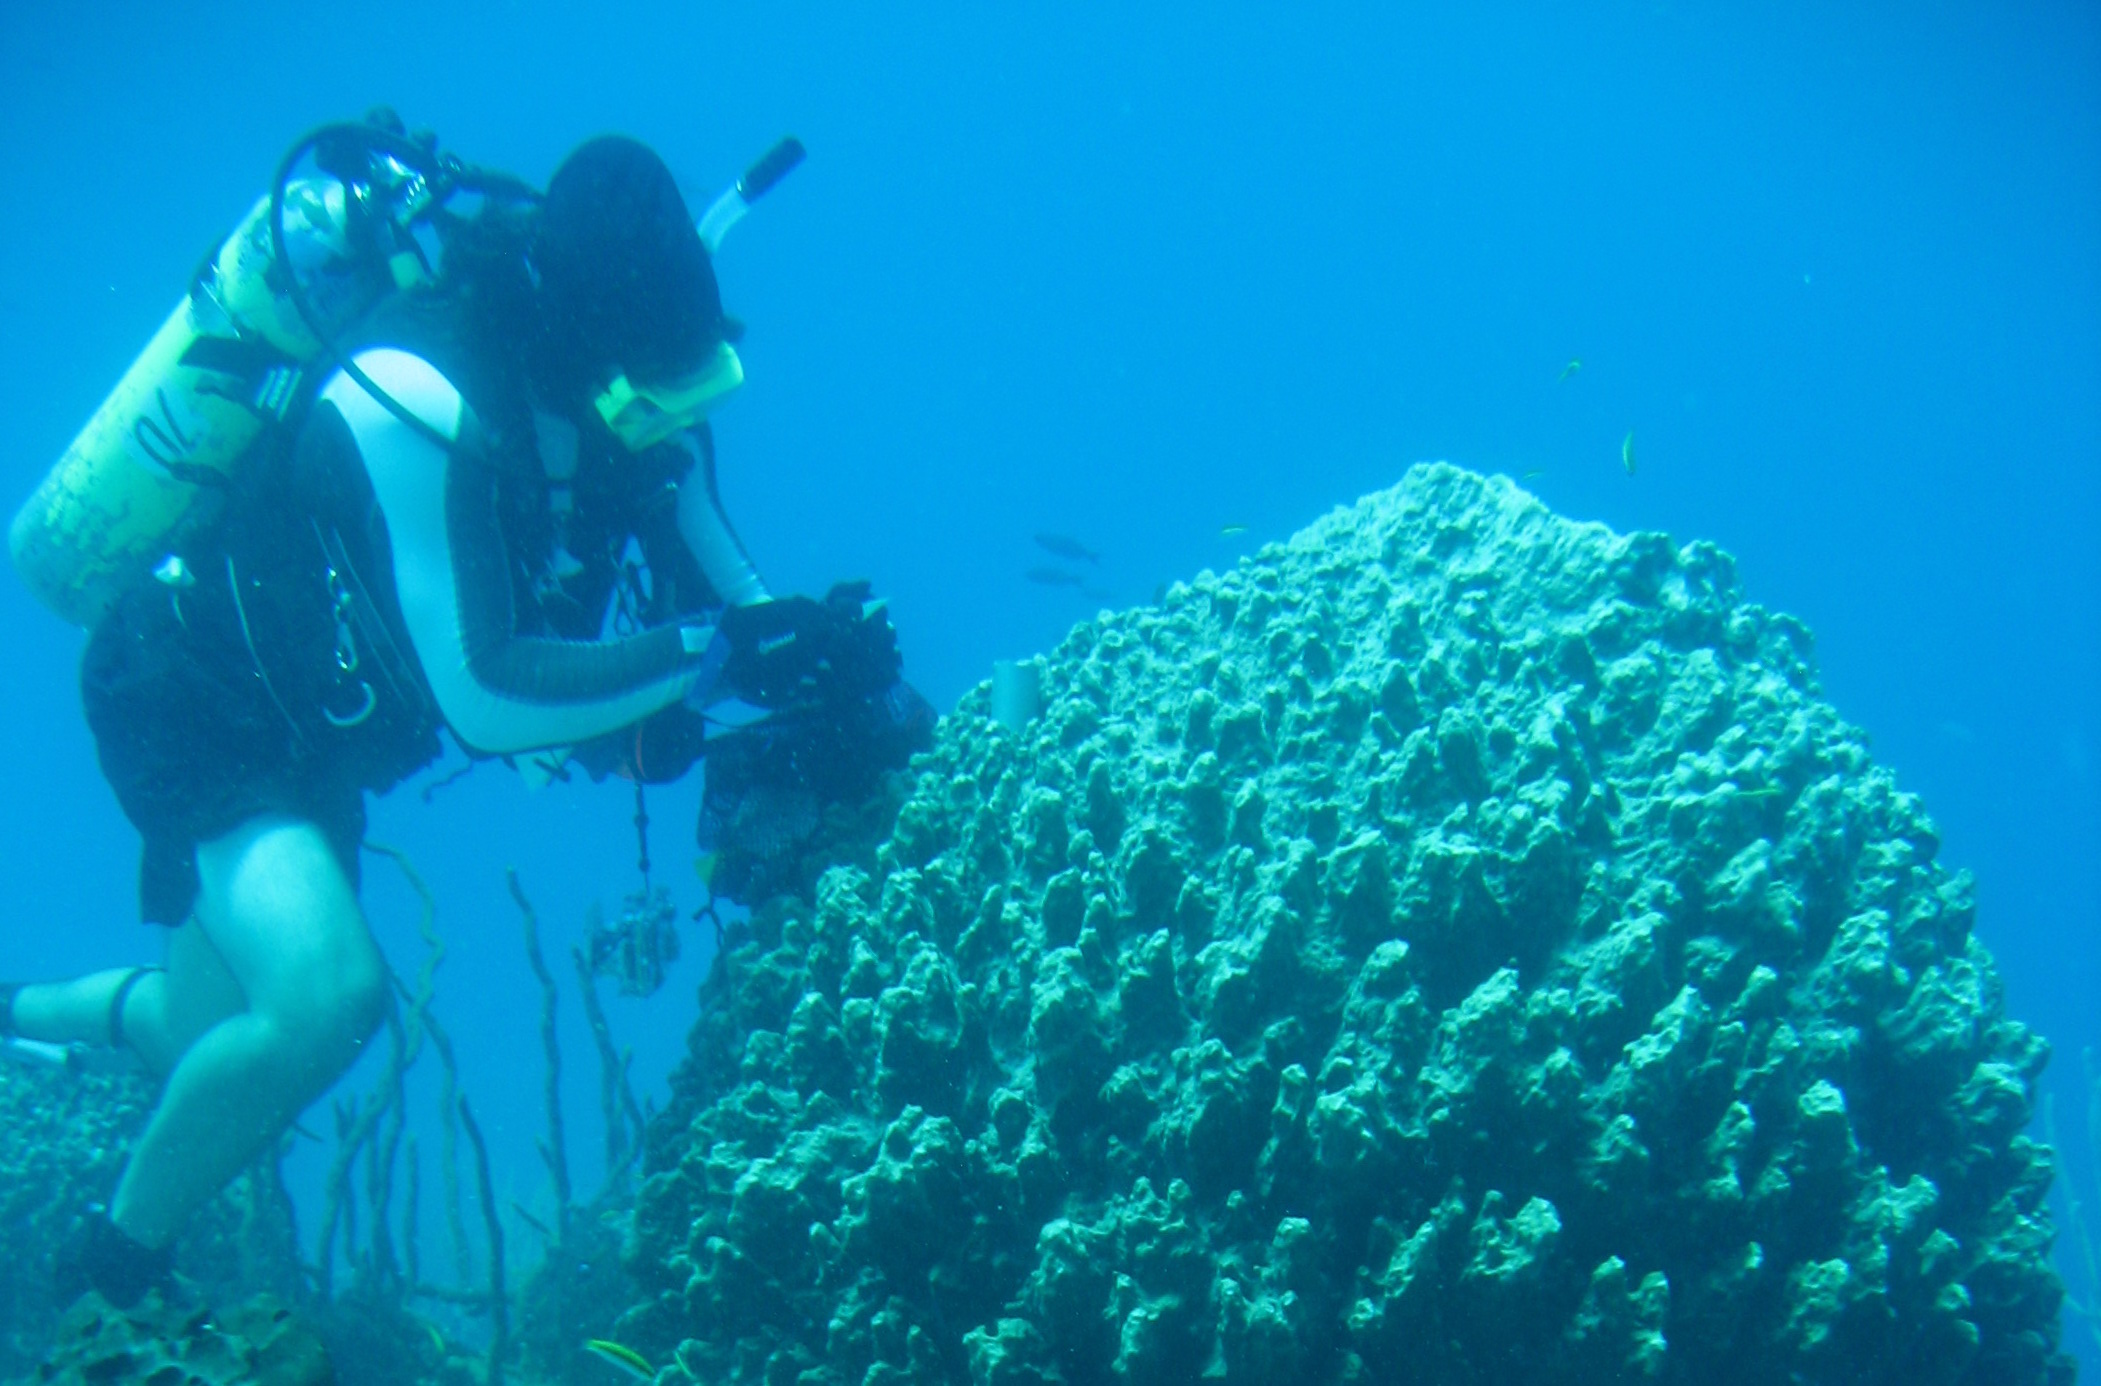 Jan dives on reef with sponges